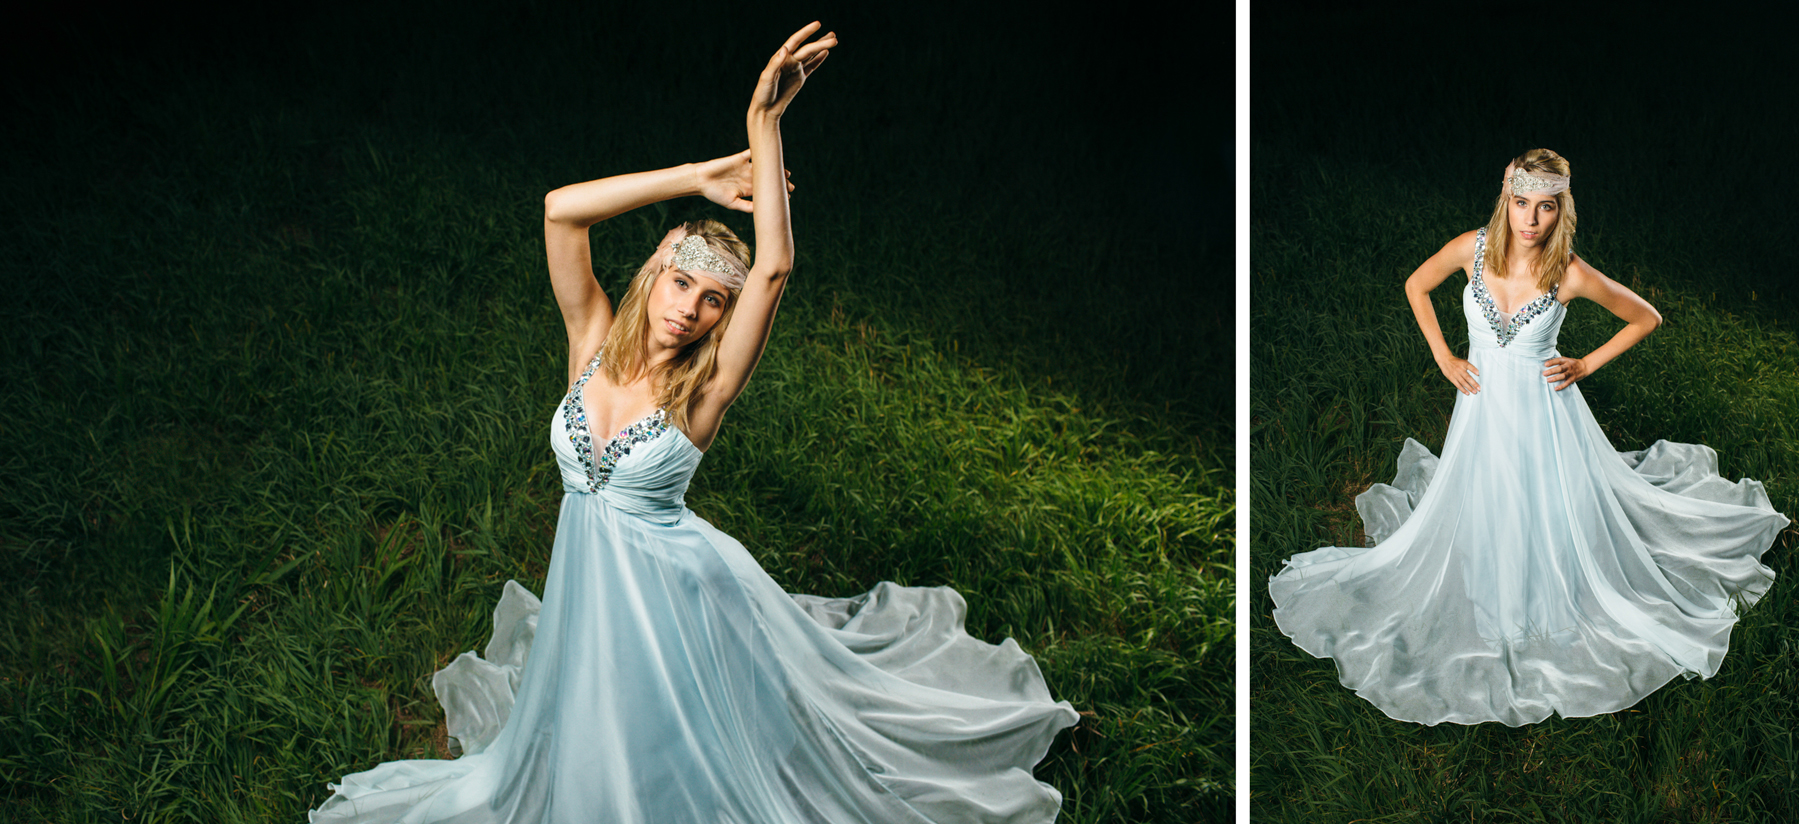 girl blue dress photography modeling with headpiece